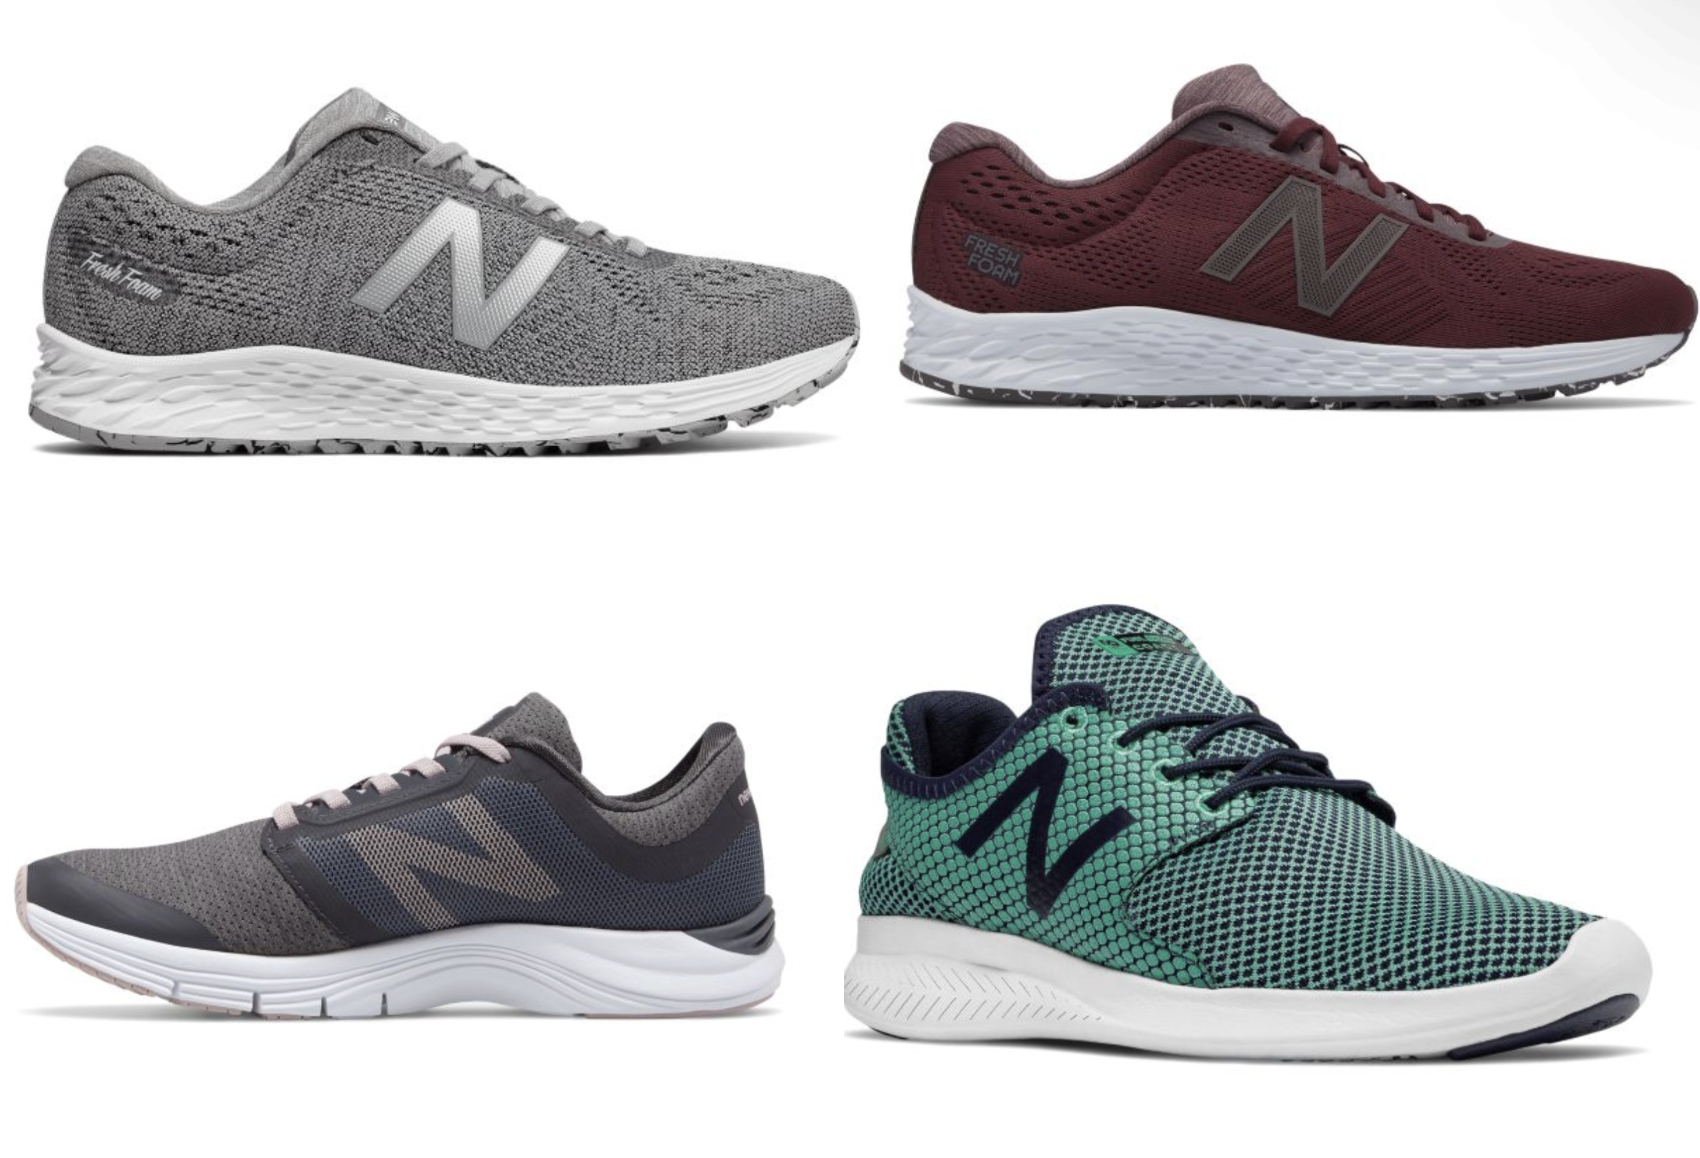 6f68eaa34a1  HOT  Women s and Men s New Balance Running Shoes for just  25 shipped!!